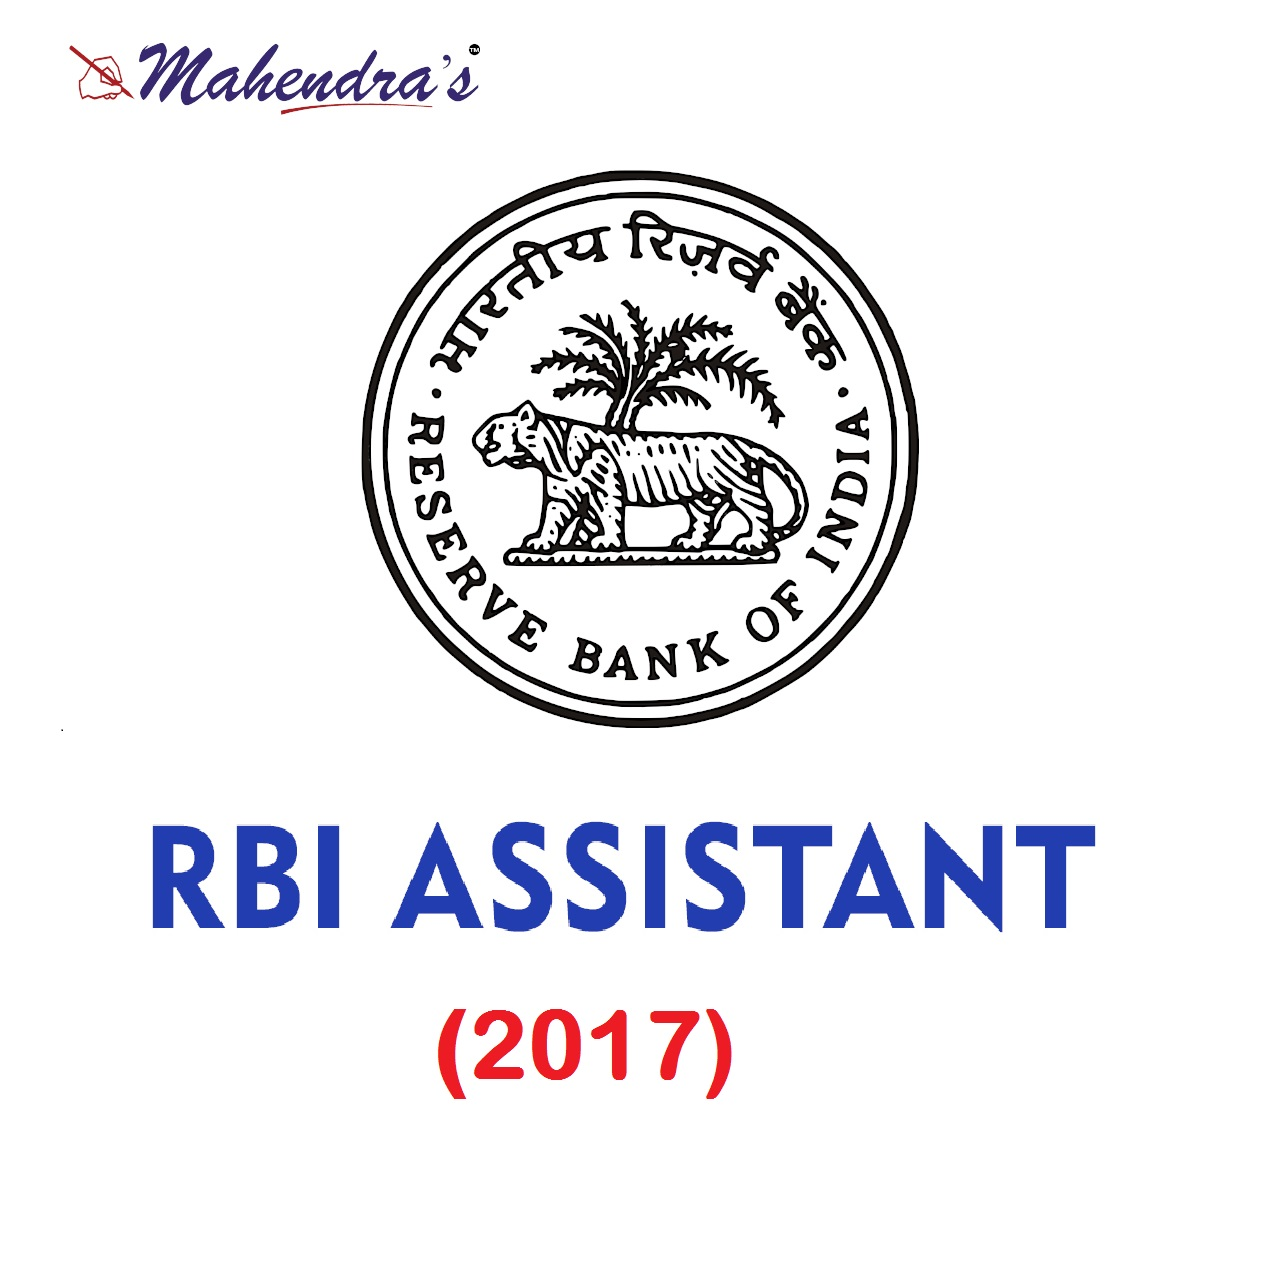 rbi assistant 2017 result expected date